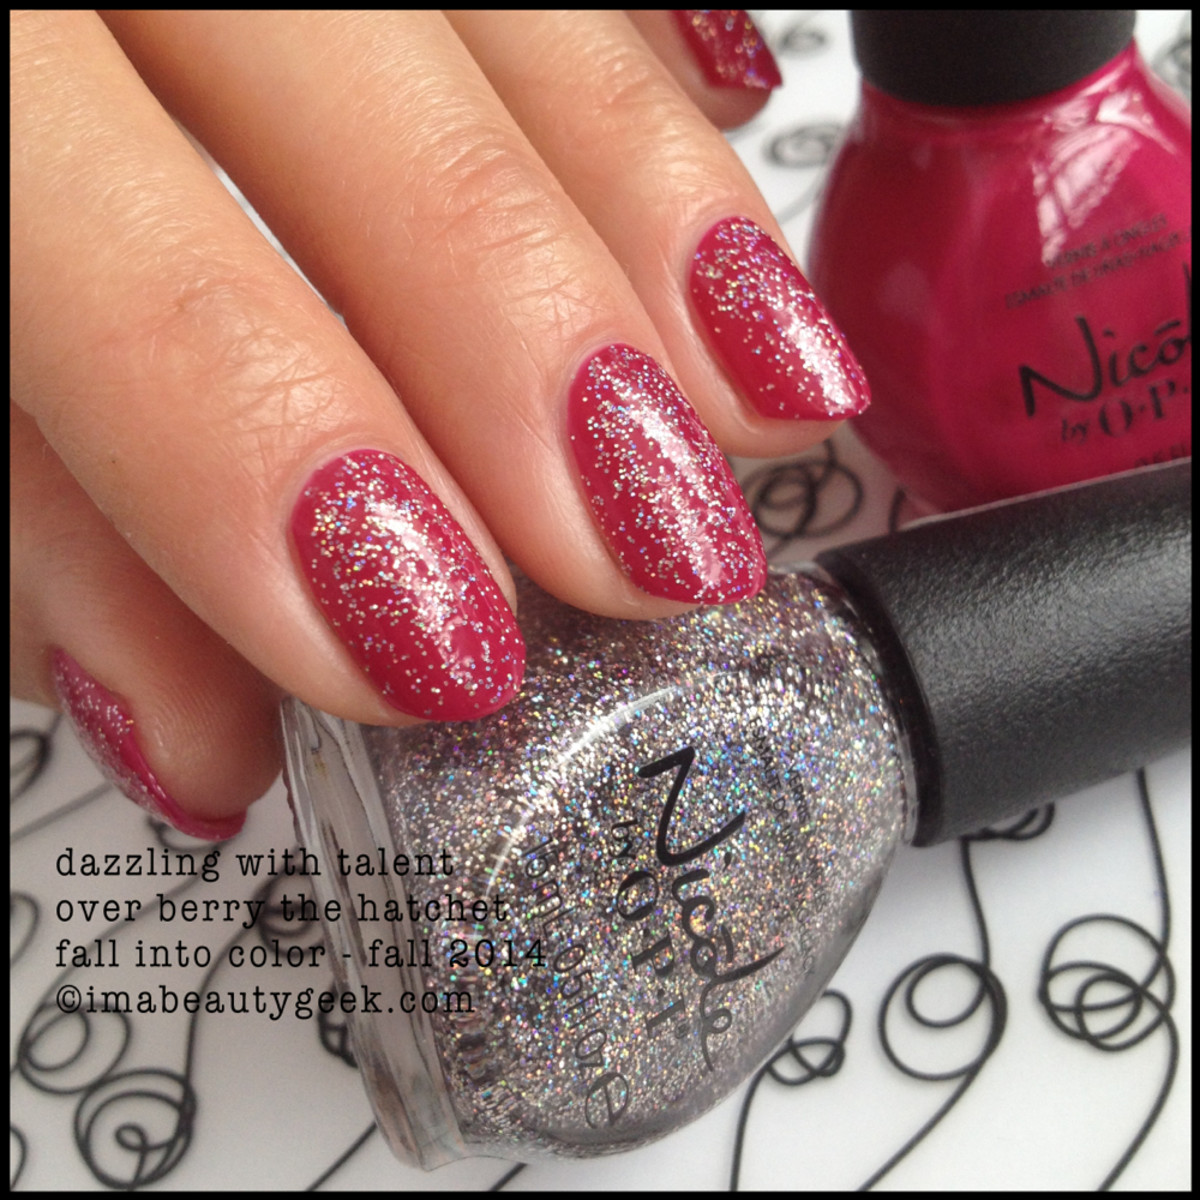 Nicole by OPI Dazzling with Talent over Berry the Hatchet Fall 2014